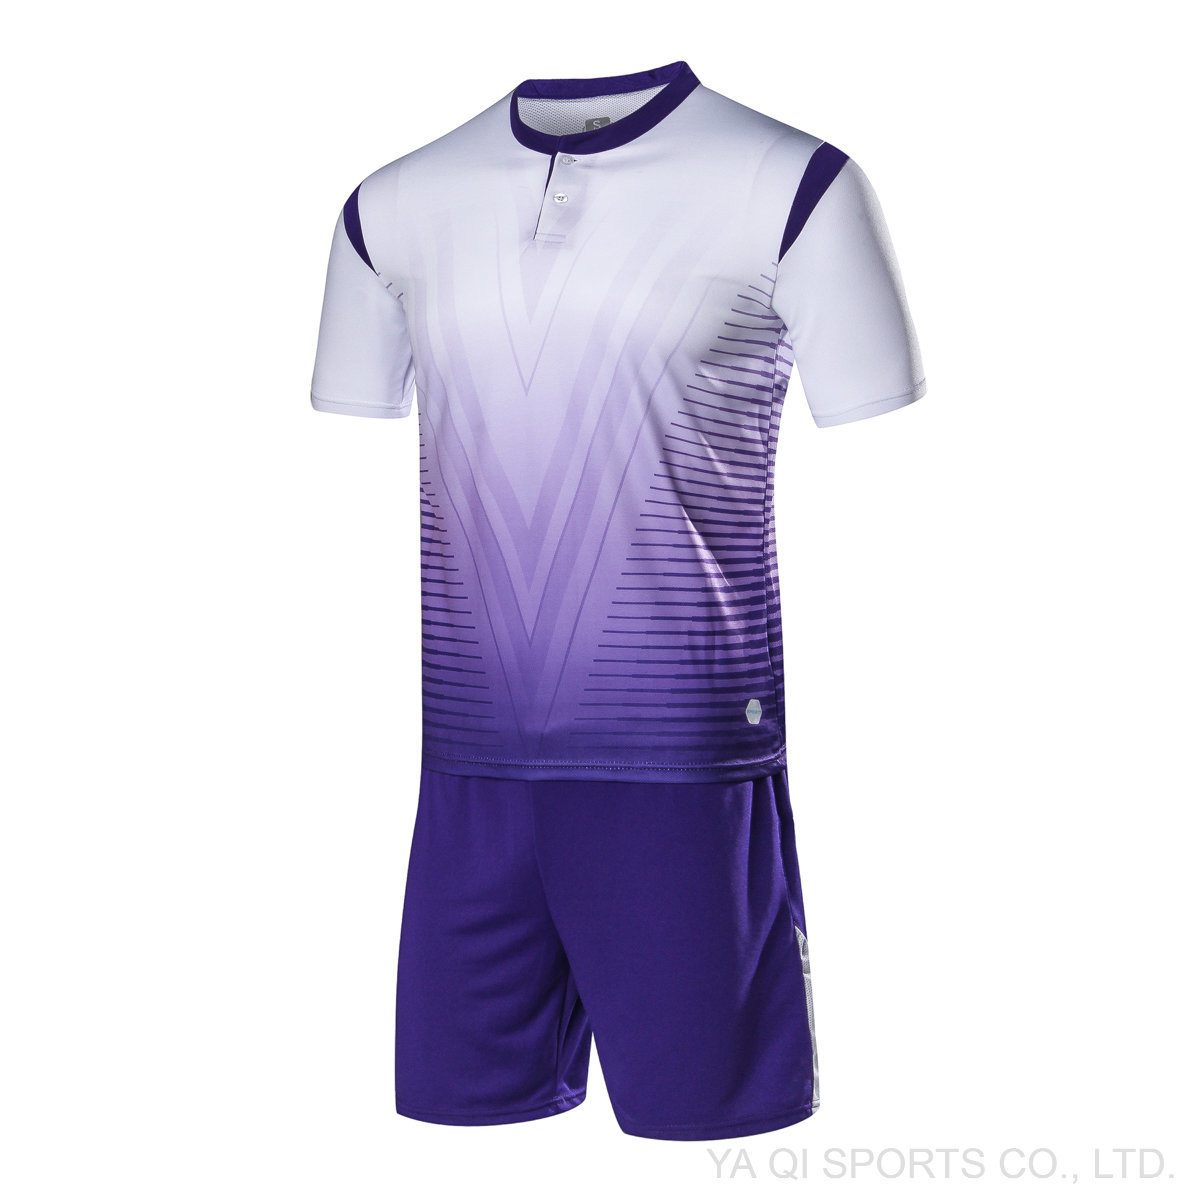 cac7005b9b7 China Best Custom Specilized Soccer Jersey League Design  Youth Soccer  Jerseys Cheap - China Soccer Uniforms